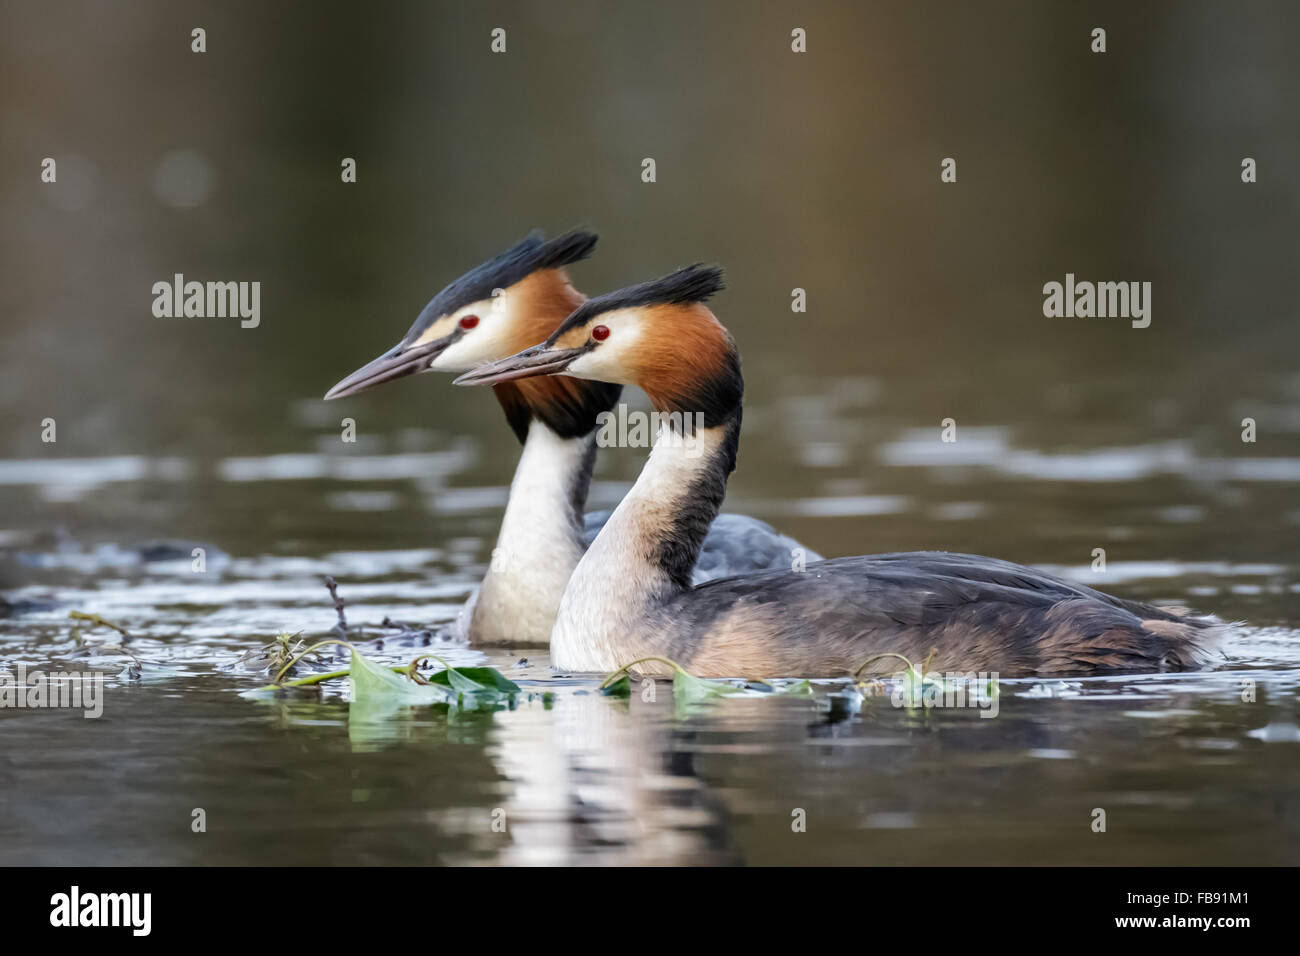 A pair of Great Crested Grebes (Podiceps cristatus) around the beginnings of a nest site. - Stock Image